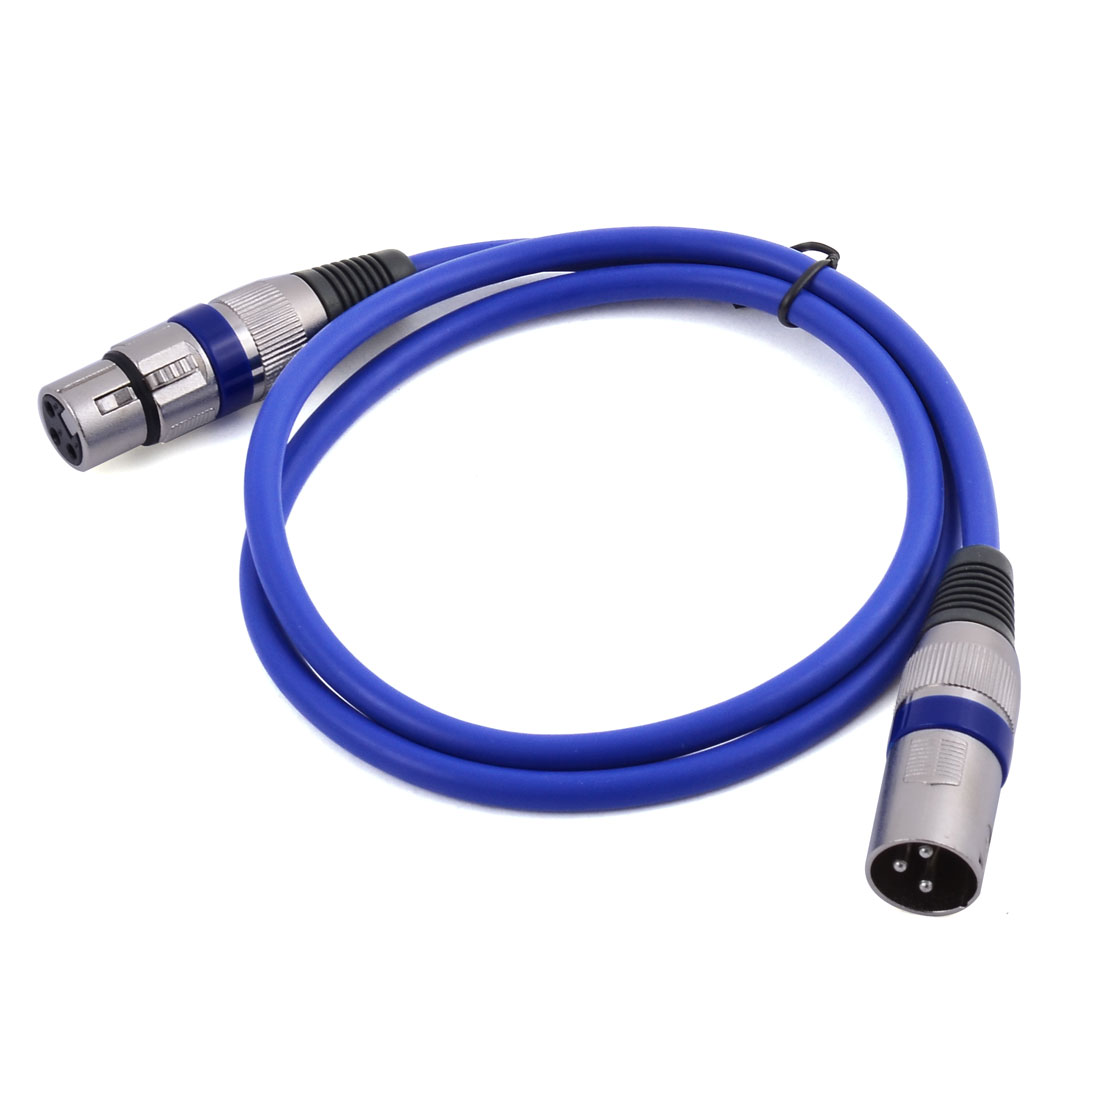 Microphone Lead XLR Male to Female Mixer Extension Cable Cord Blue 3.3Ft Length